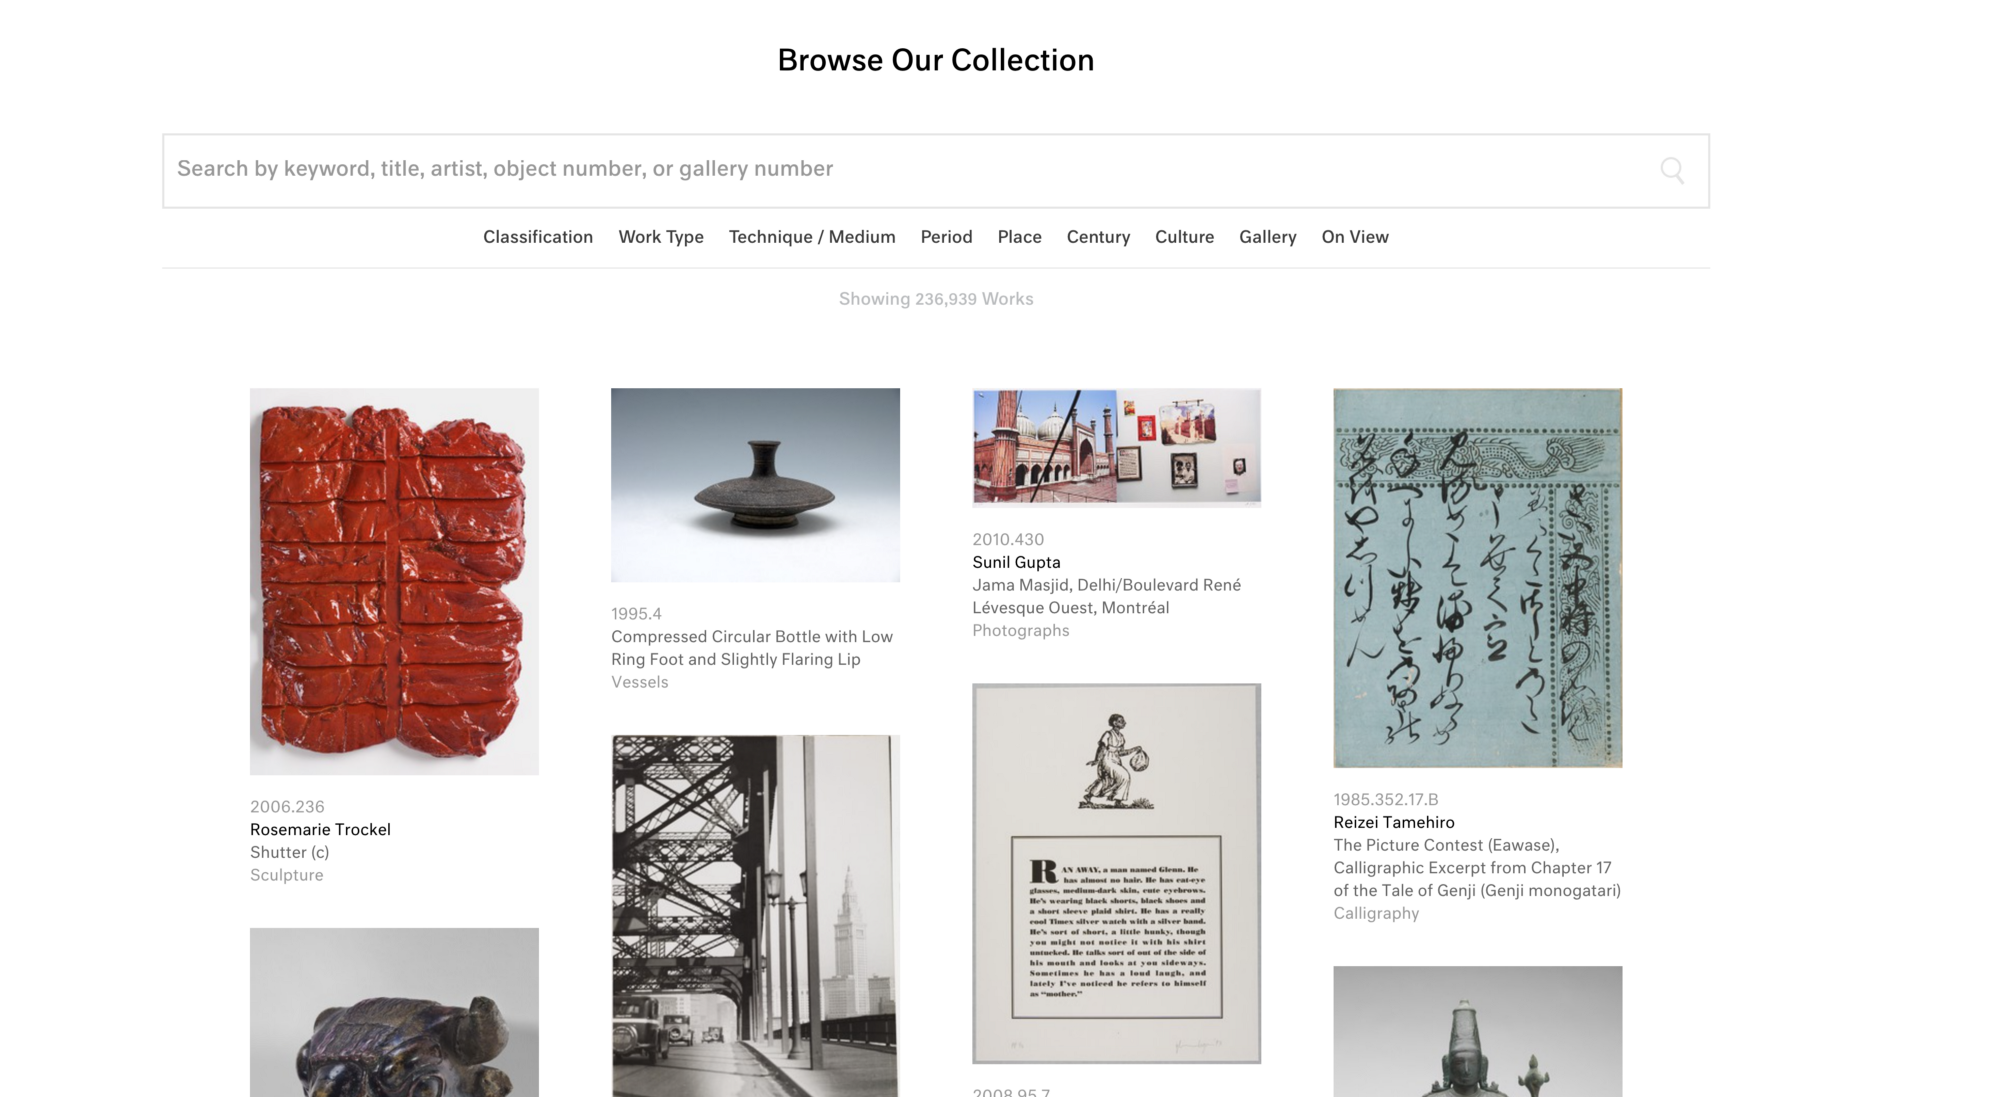 Collection of art pieces shown in a grid with a search bar on top